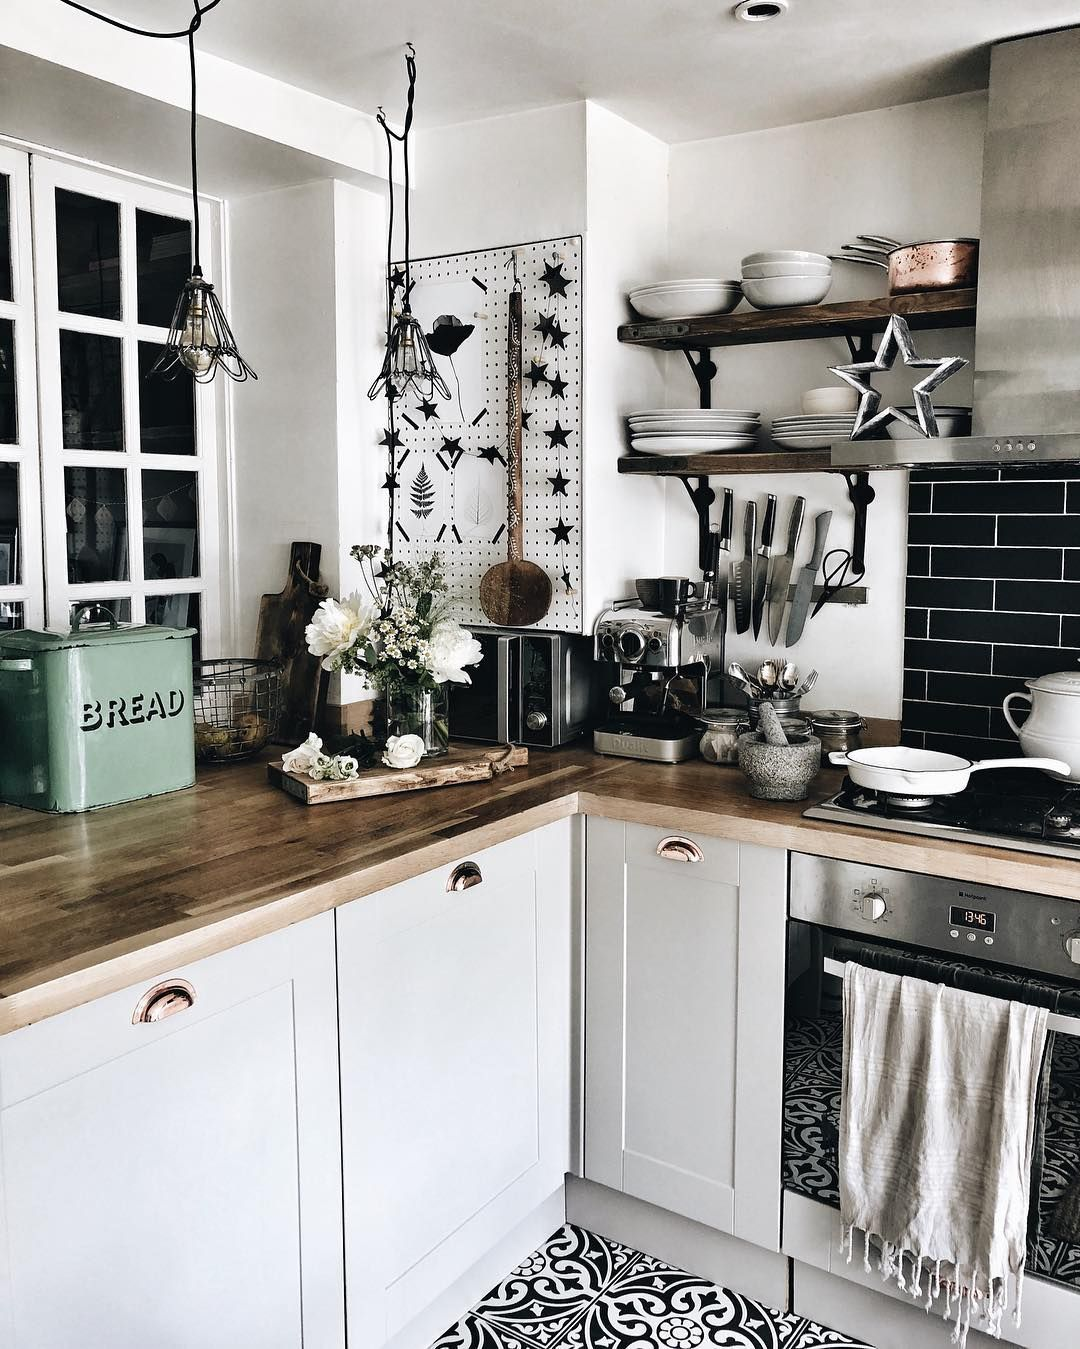 Kitchen House Ideas Scandy House House Design House Plans House Decorations Dream House Small House Cute Living Room Interior Design Living Room Kitchen